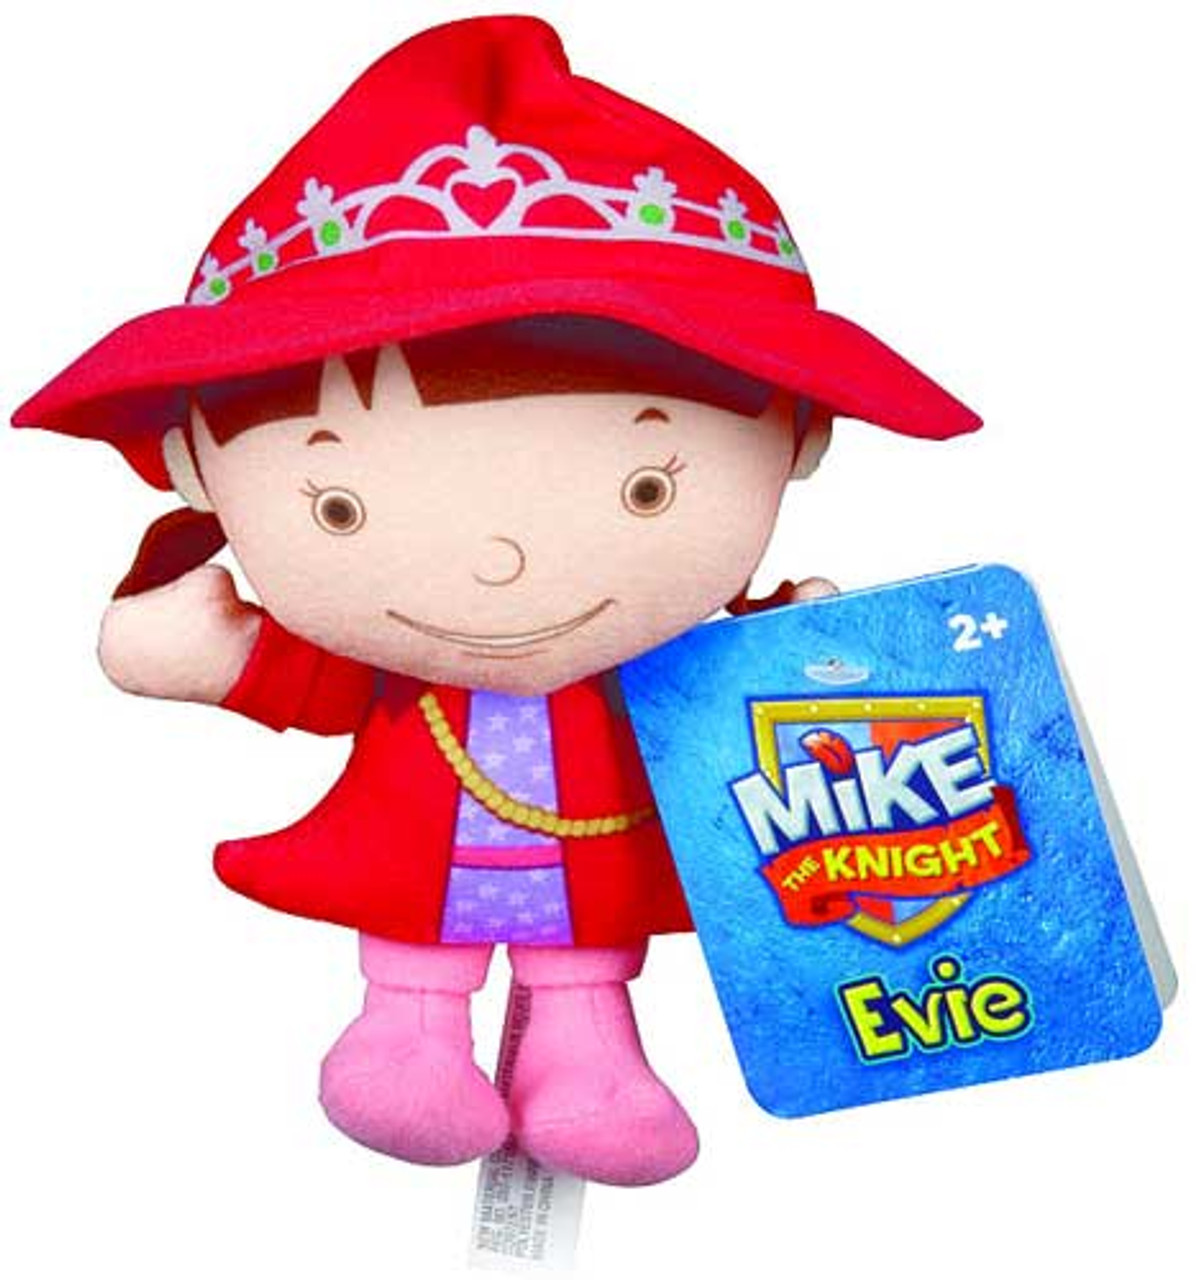 Fisher Price Mike the Knight Evie 6-Inch Plush